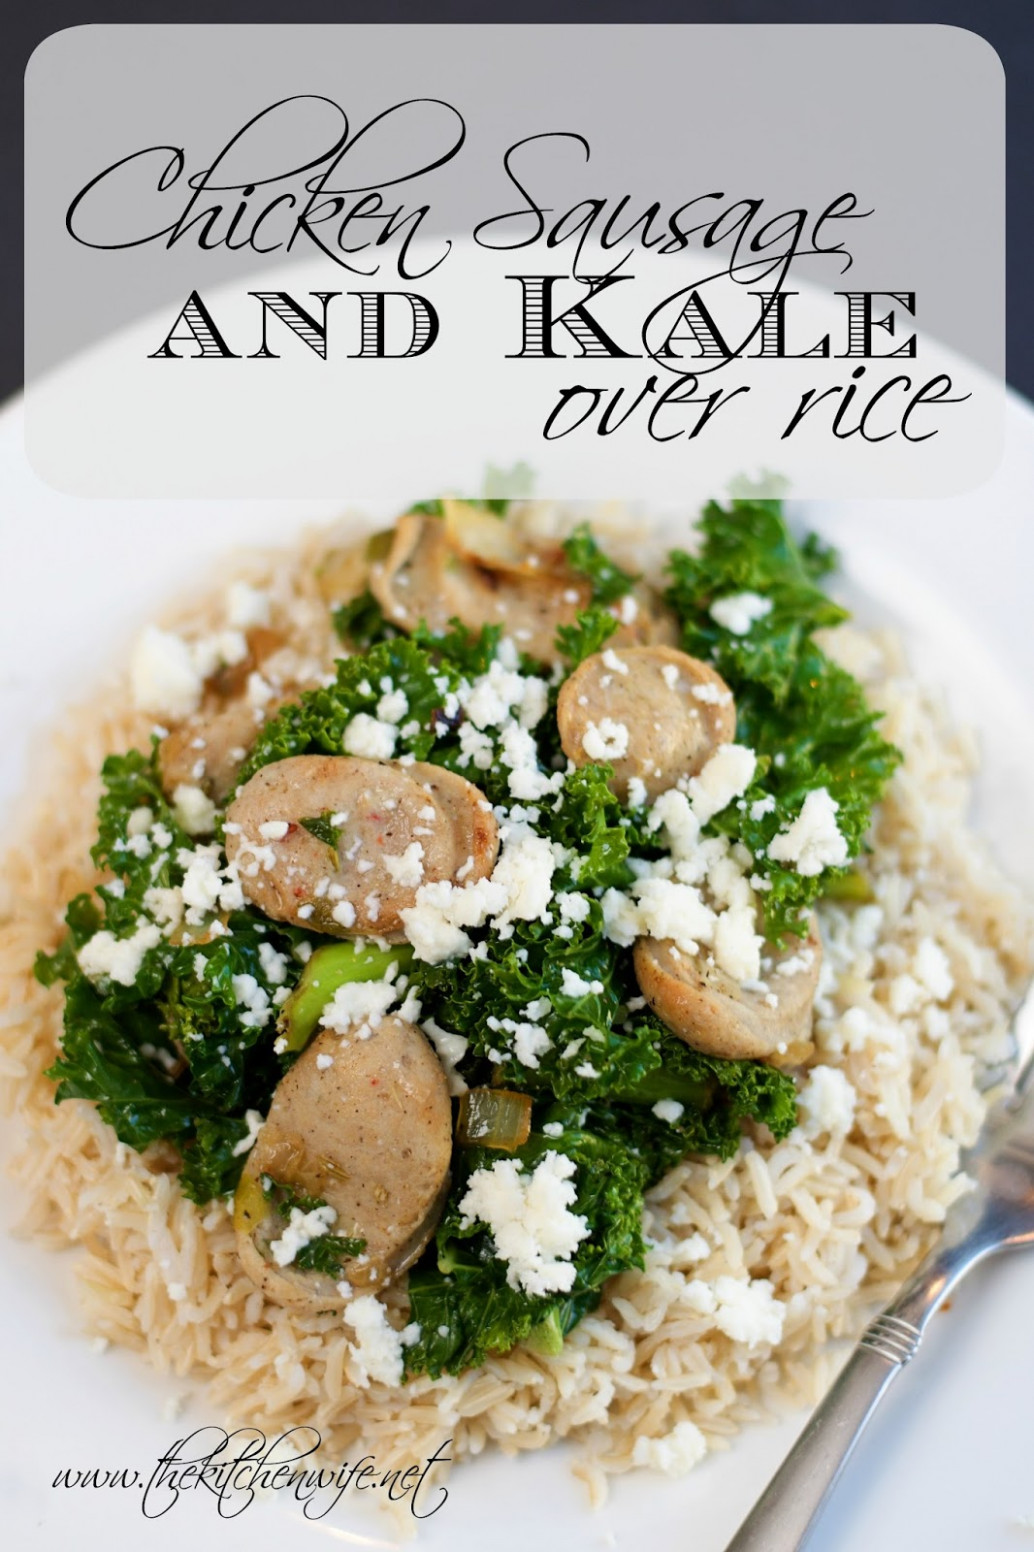 Chicken Sausage And Kale Over Rice Recipe - The Kitchen Wife - Healthy Chicken And Kale Recipes